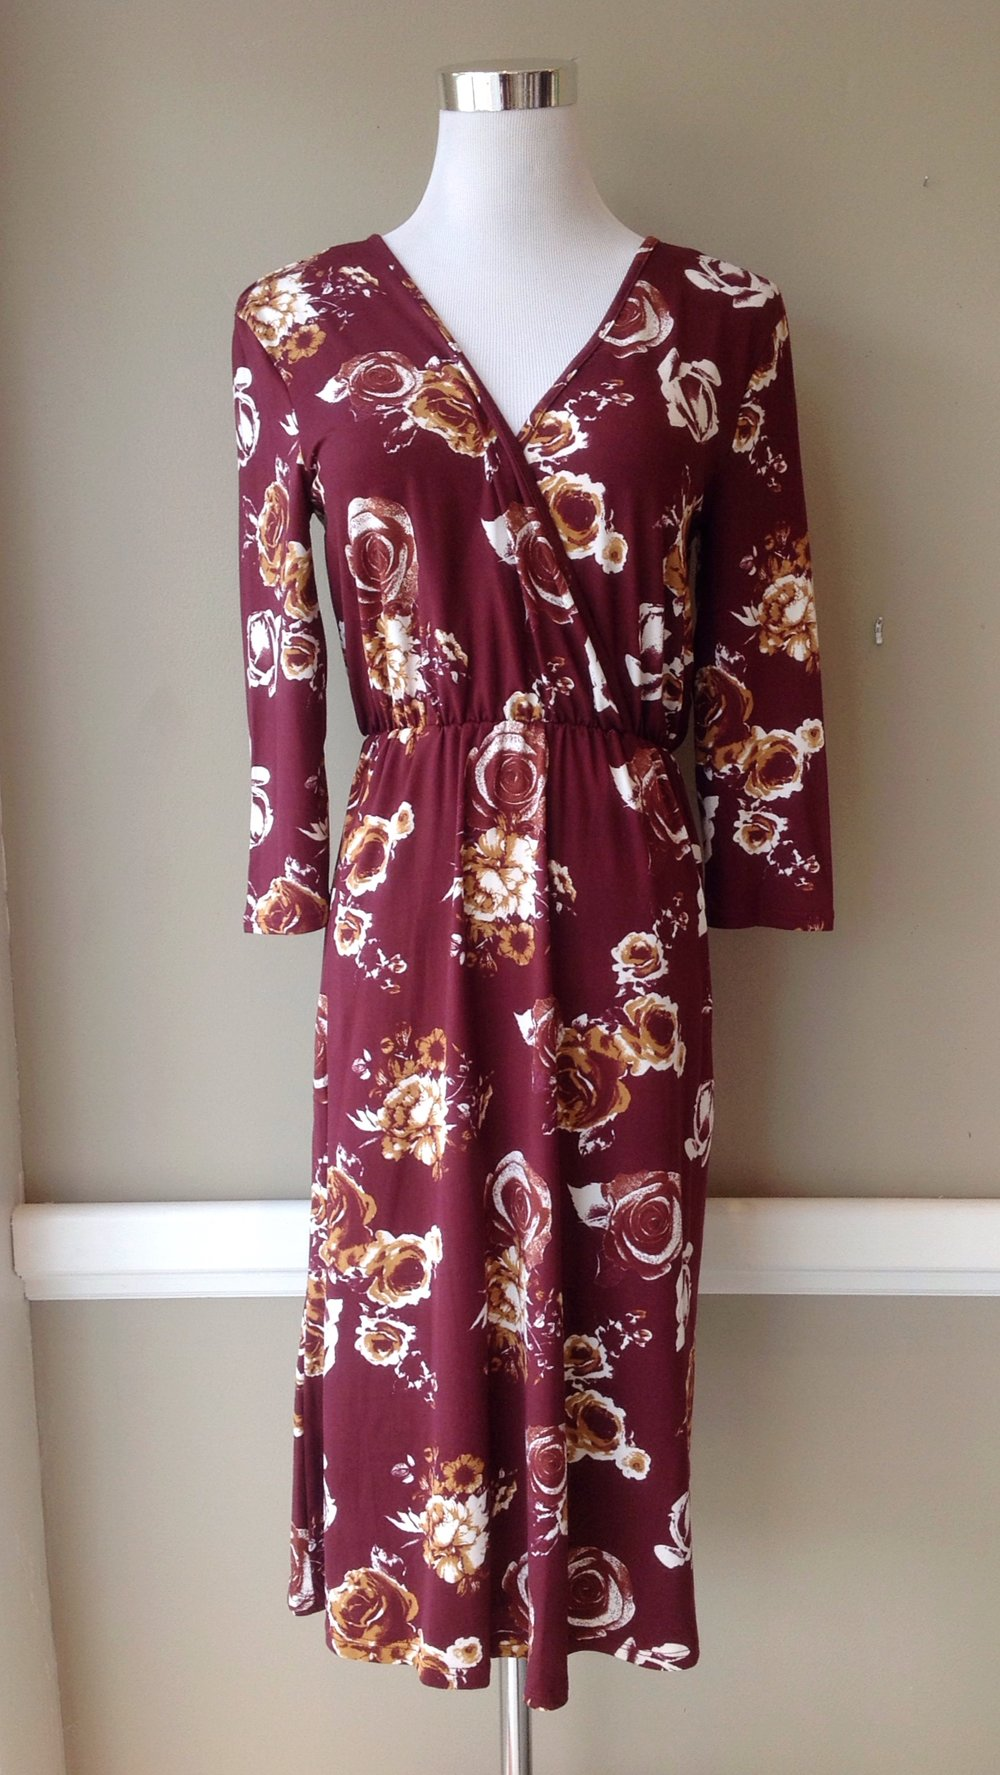 Burgundy floral midi dress with wrap front and 3/4 sleeves, $38